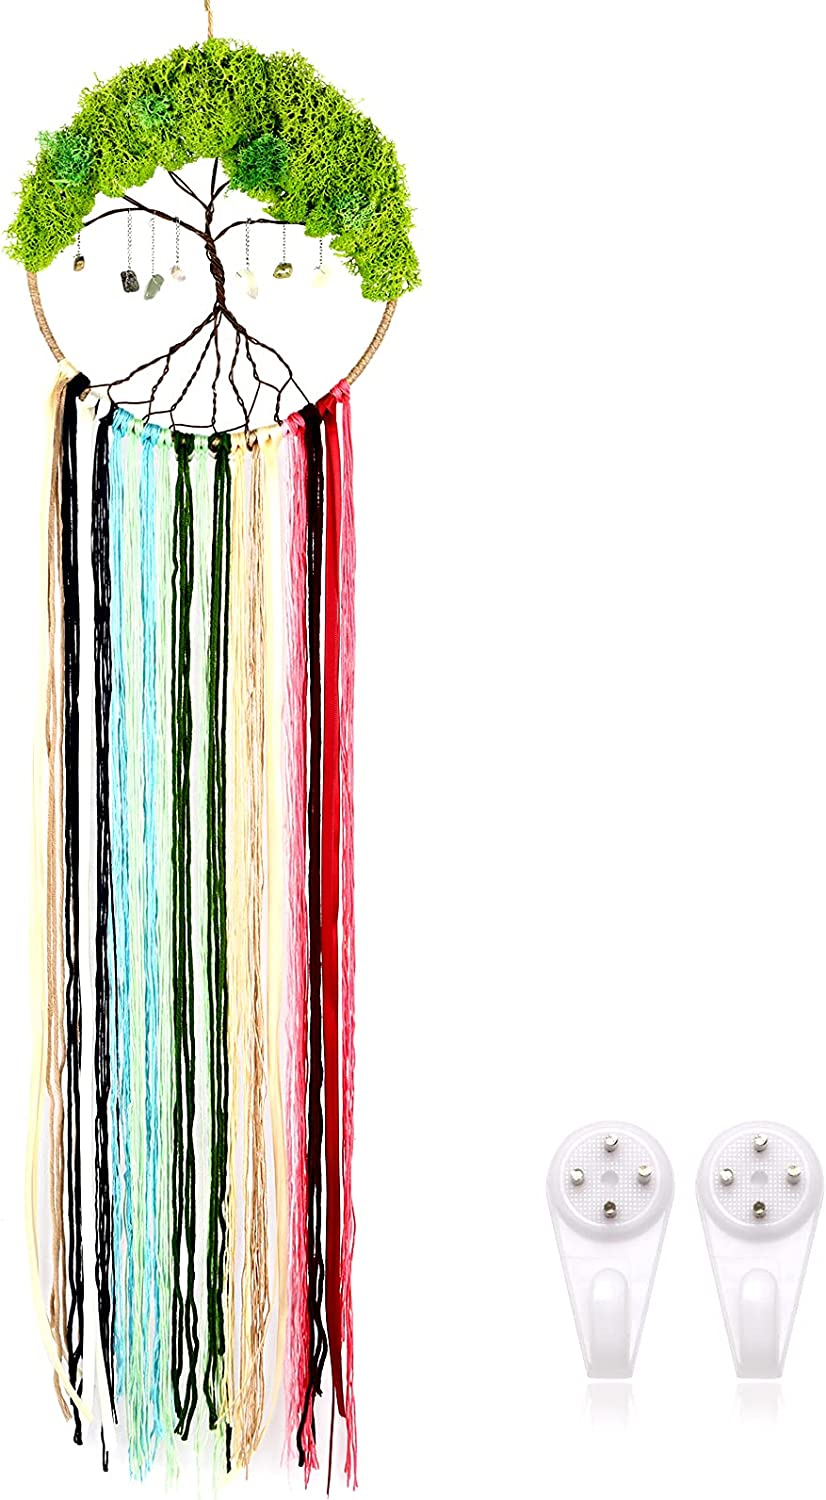 Tree of Life Dream Catcher,Colorful Dream Catcher for Bedroom,Long Tassel Family Wall Hanging Decor, Hand-Woven from Metal Cotton Tthread Crystal Stone,Gift for Family and Friends, Free 2 Hooks